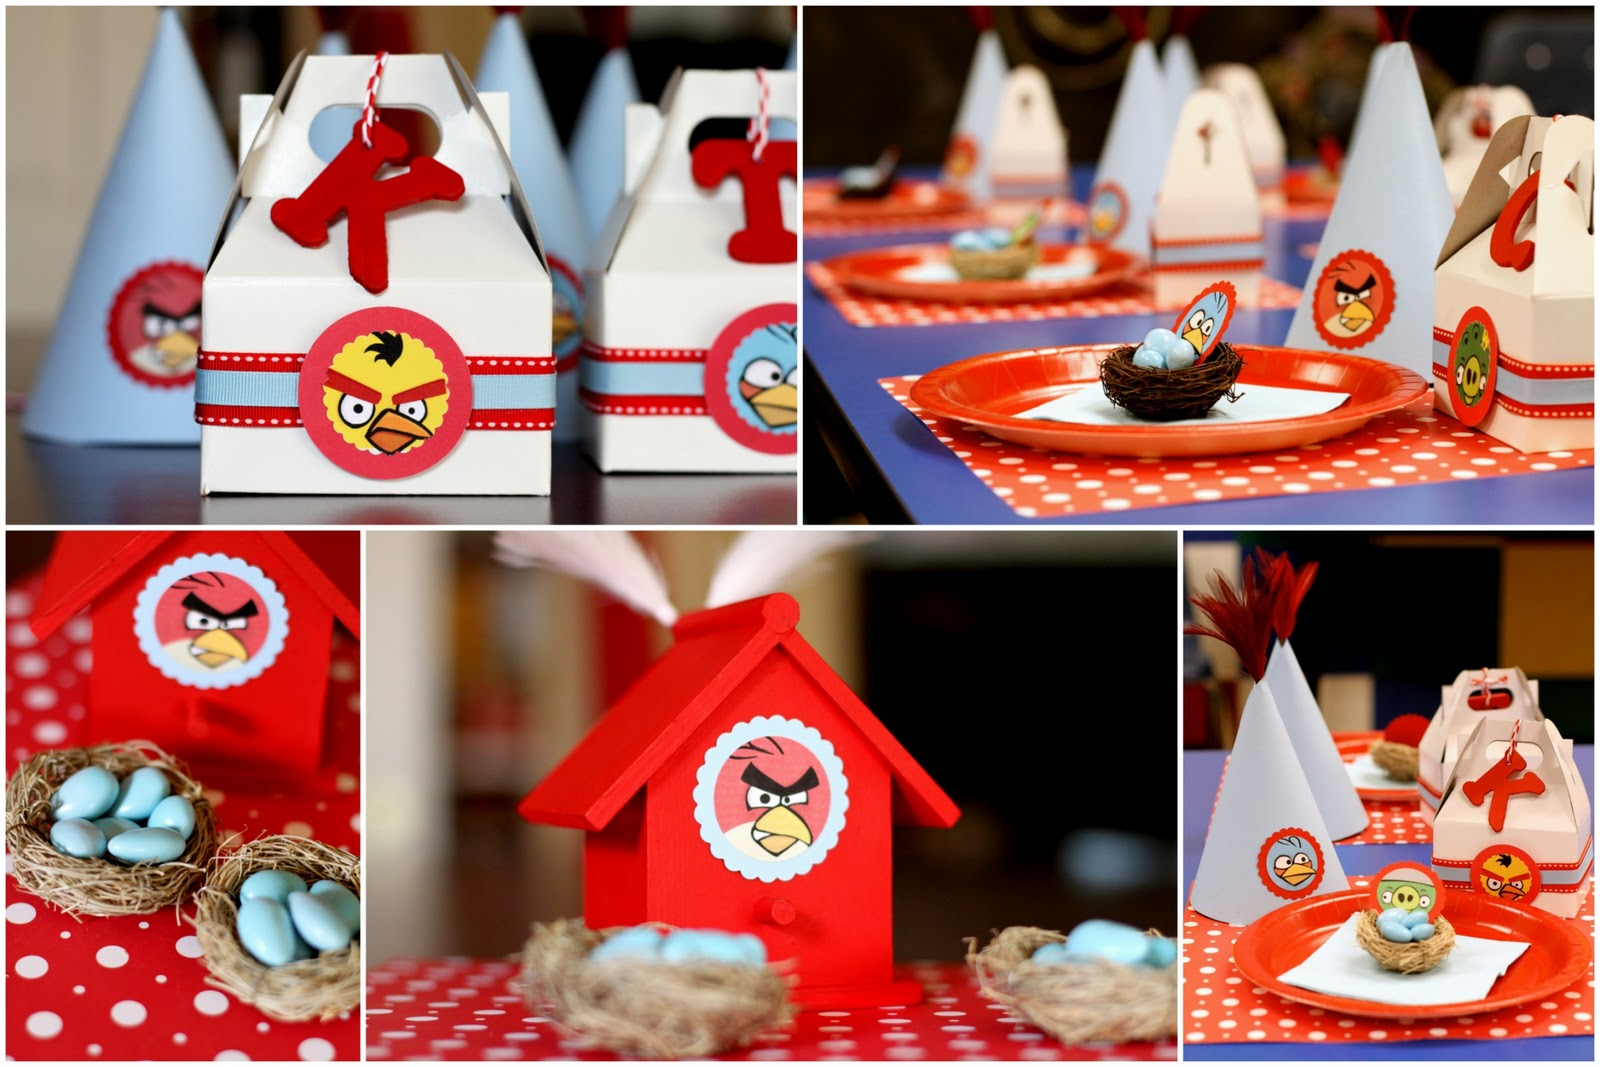 Cute food for kids march 2011 for Angry bird birthday decoration ideas